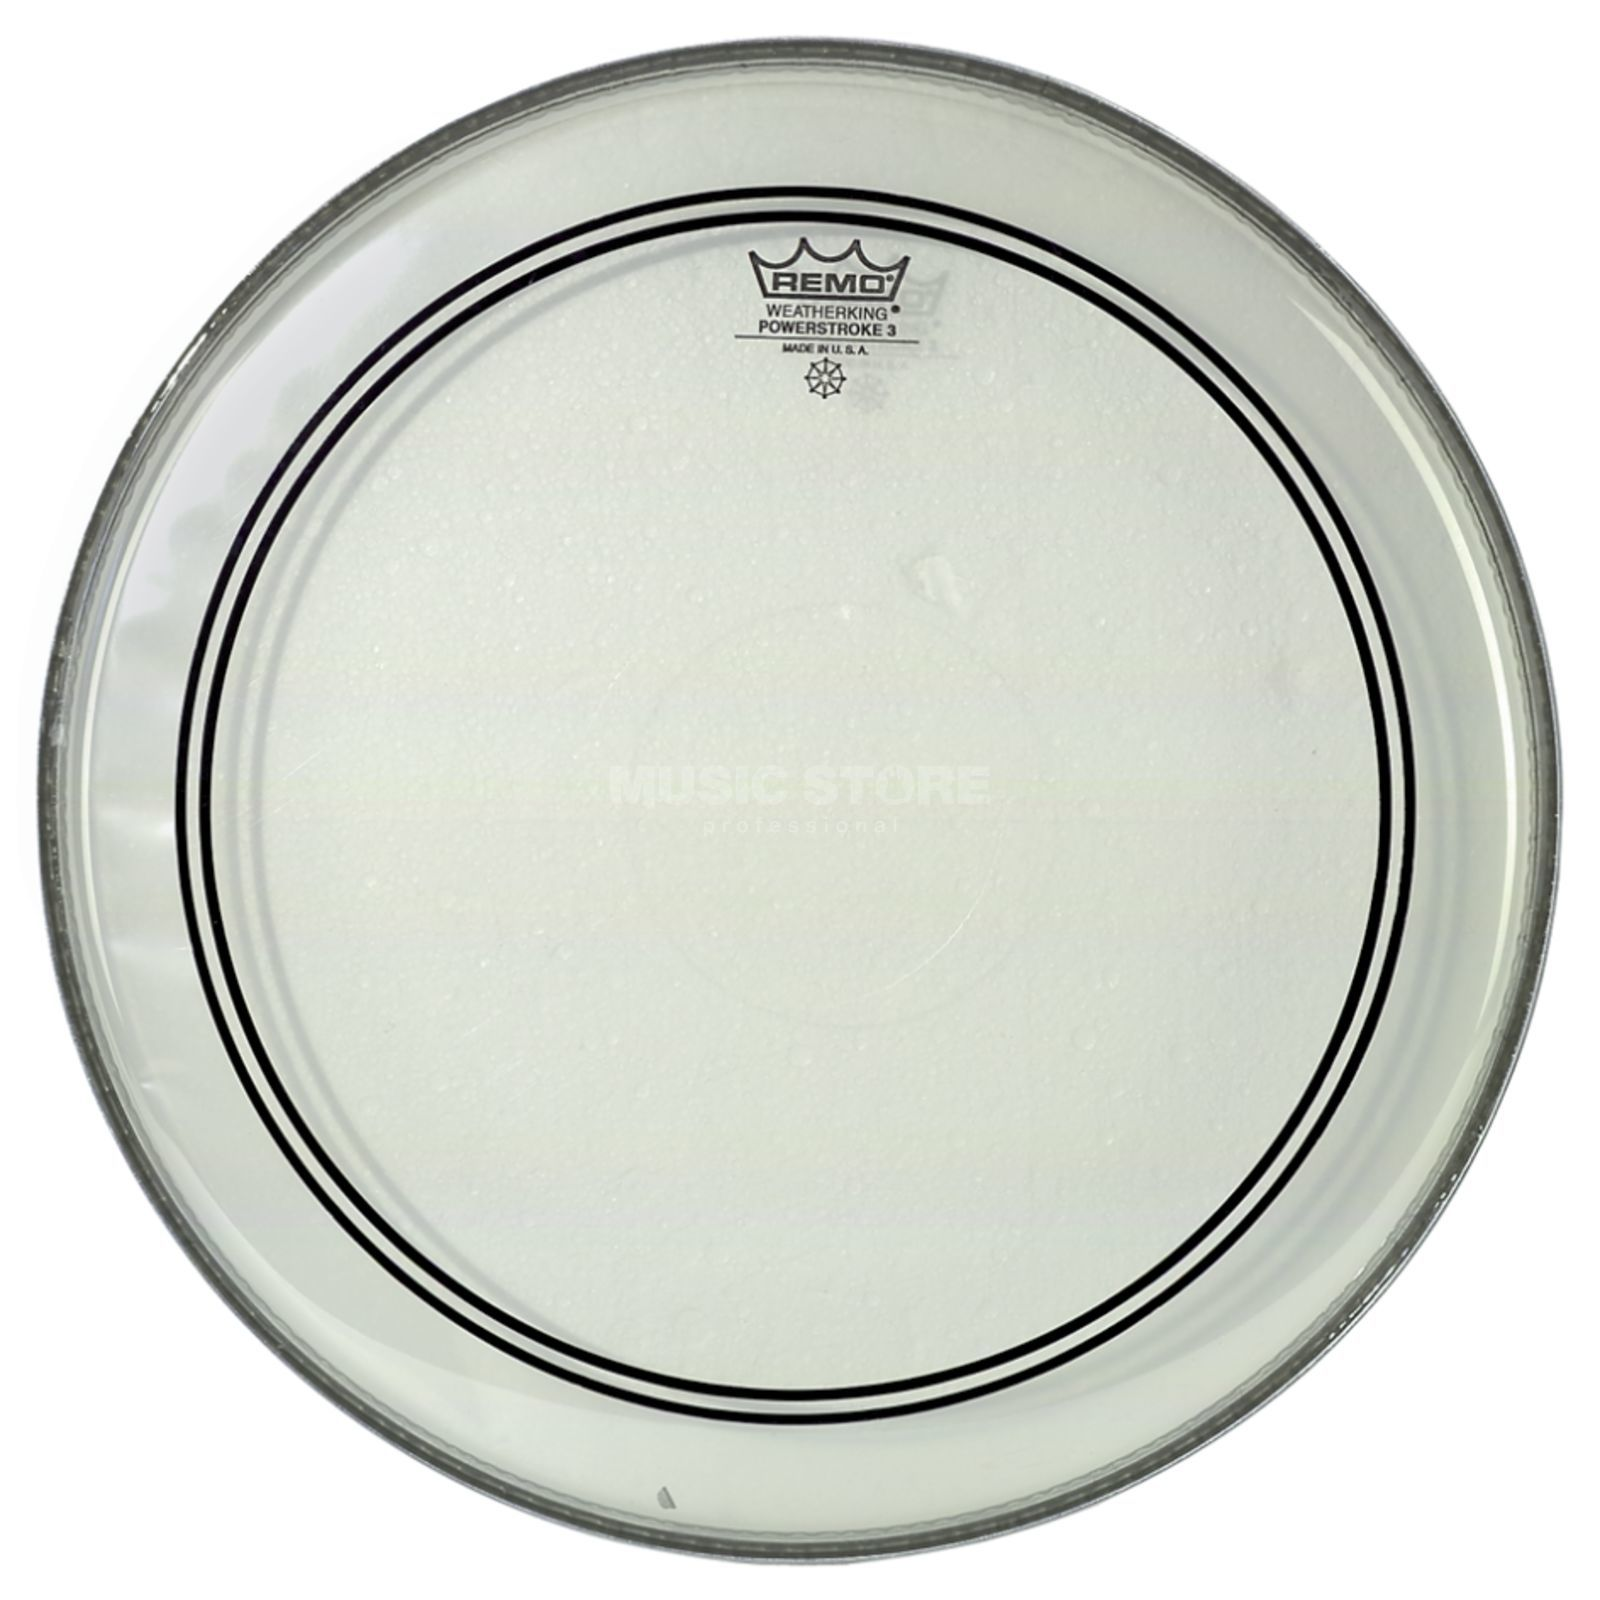 "Remo Powerstroke 3 Clear 14"", Tom Batter/Reso, Snare Batter Product Image"